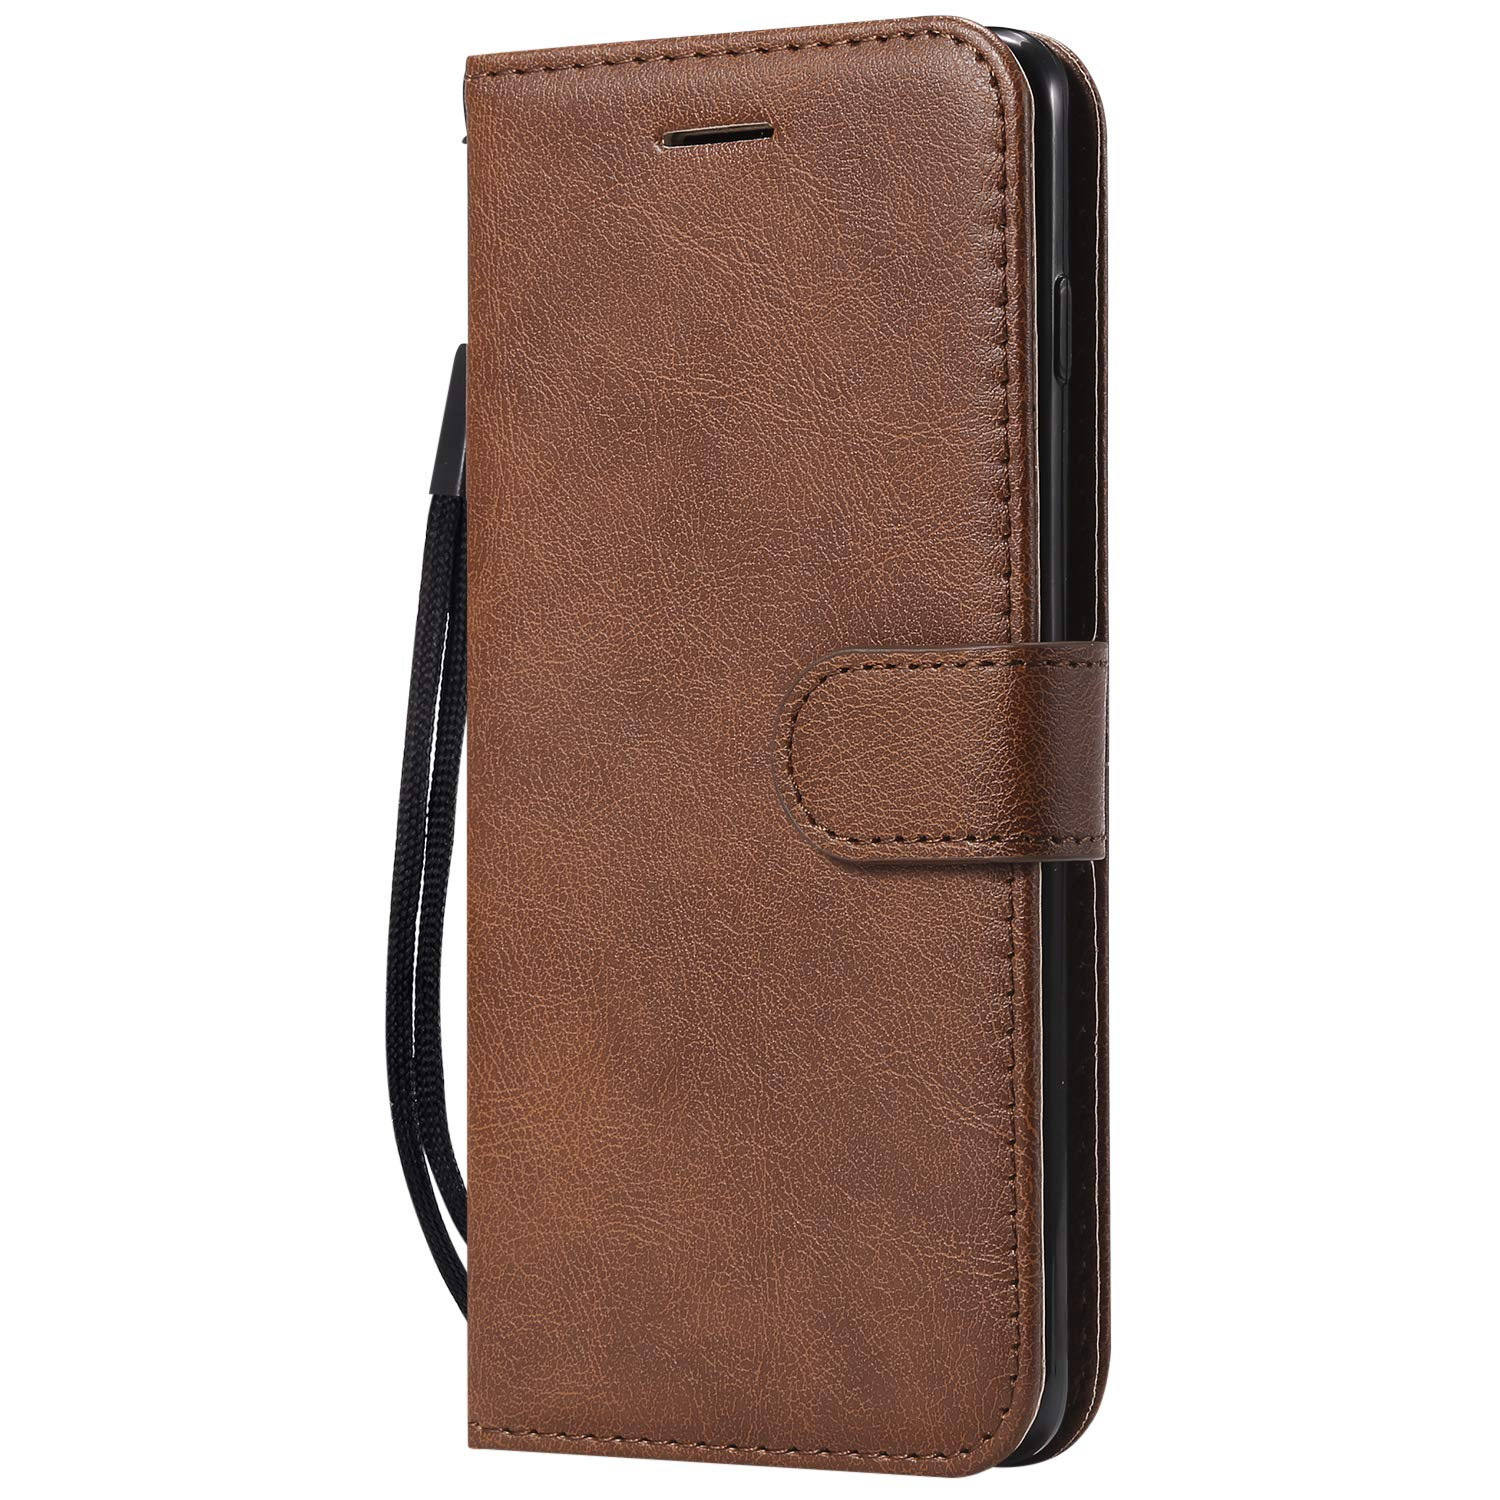 Galaxy S10e Case,AIIYG DS Classic Pure Color [Kickstand Feature] Flip Folio Leather Wallet Case with ID and Credit Card Pockets for Samsung Galaxy S10e,Brown